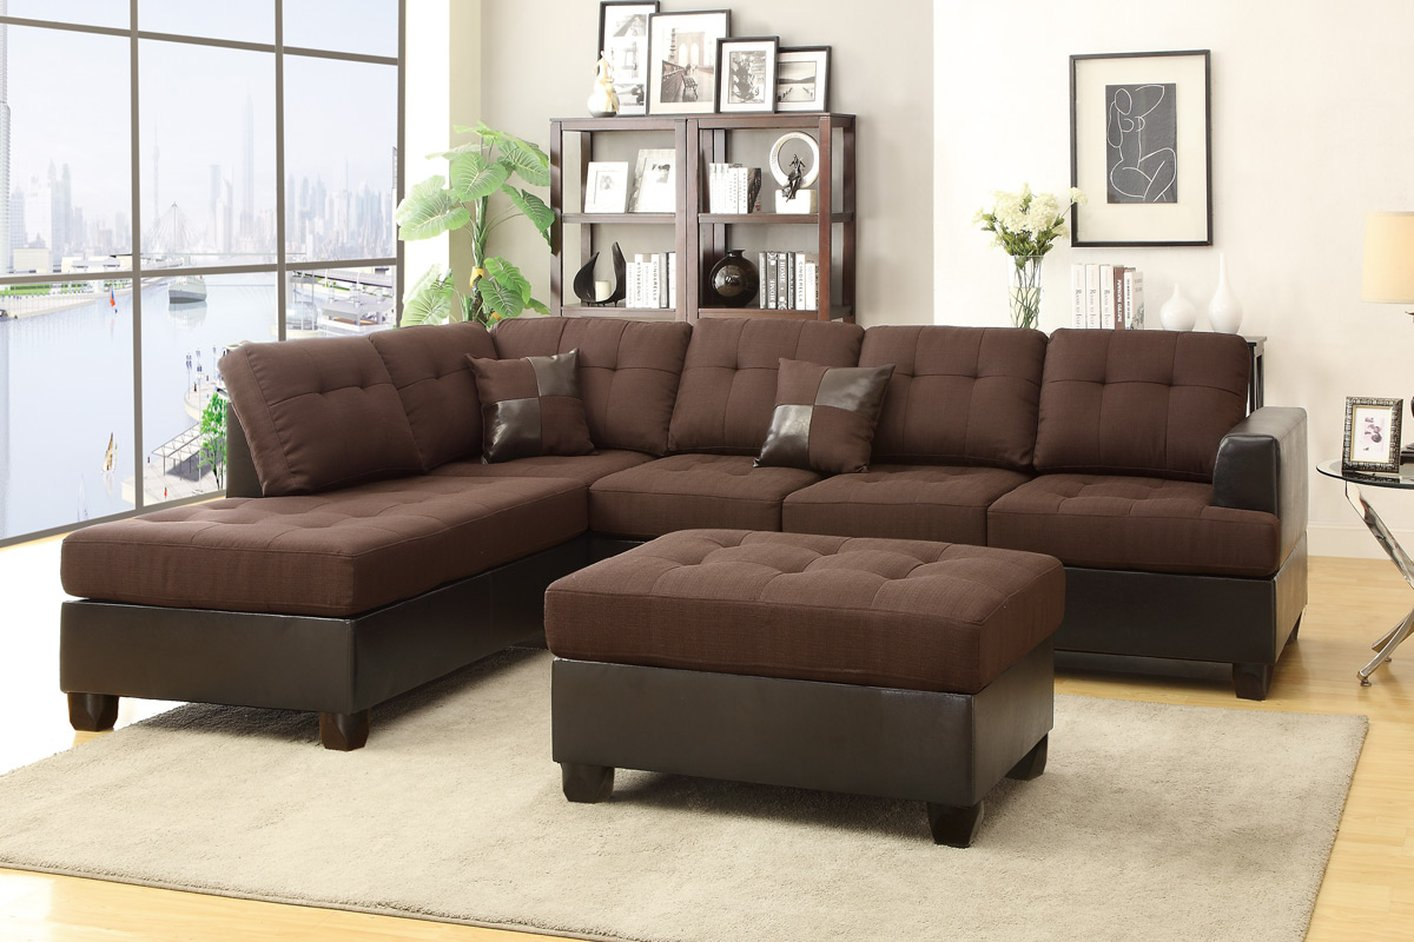 Poundex Moss F7602 Brown Fabric Sectional Sofa And Ottoman Steal A Sofa Furniture Outlet Los